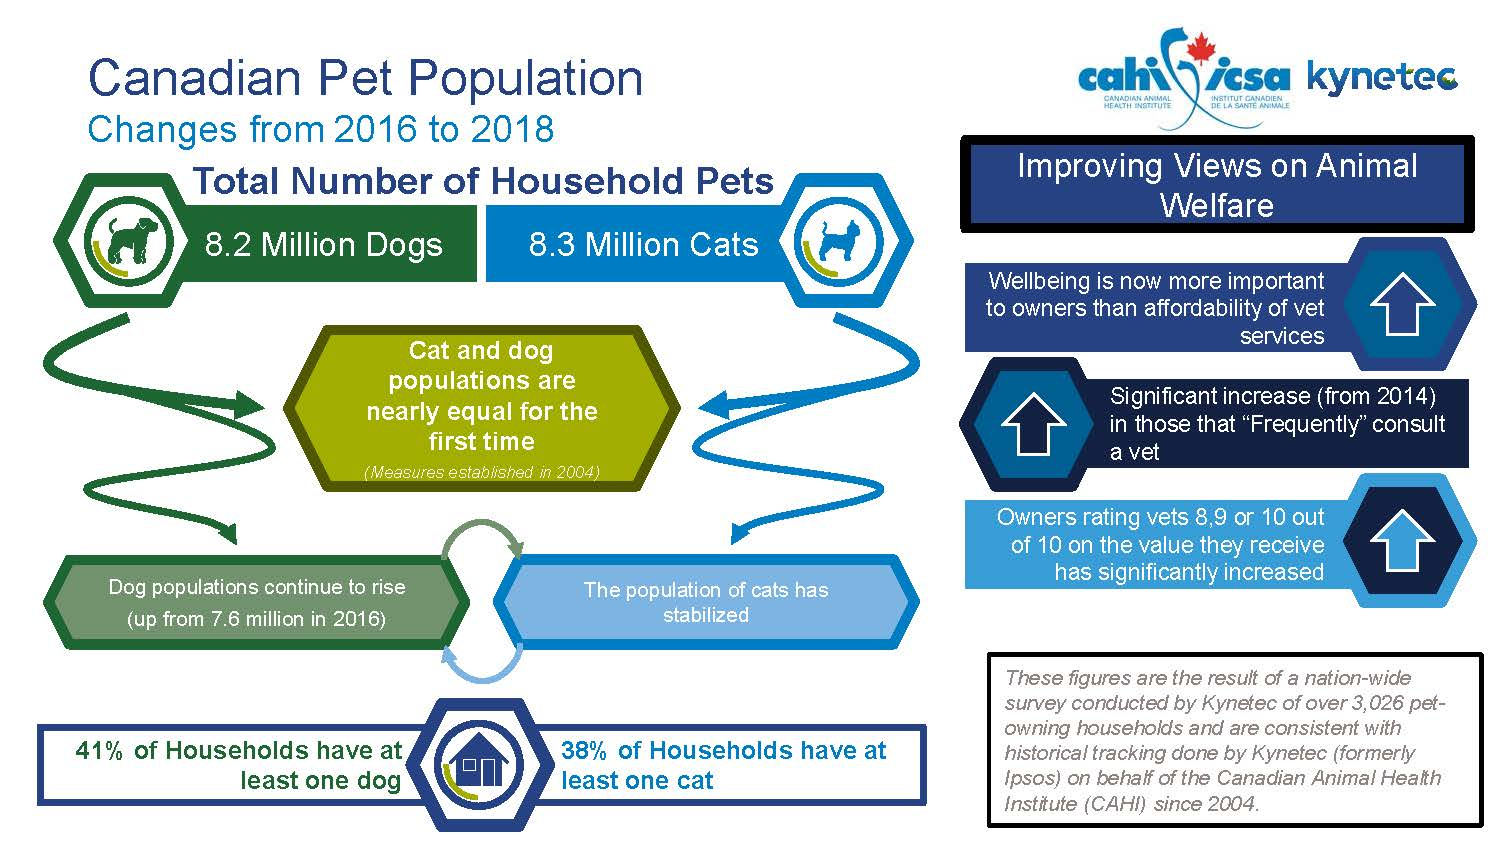 Ownership of pets in Canada